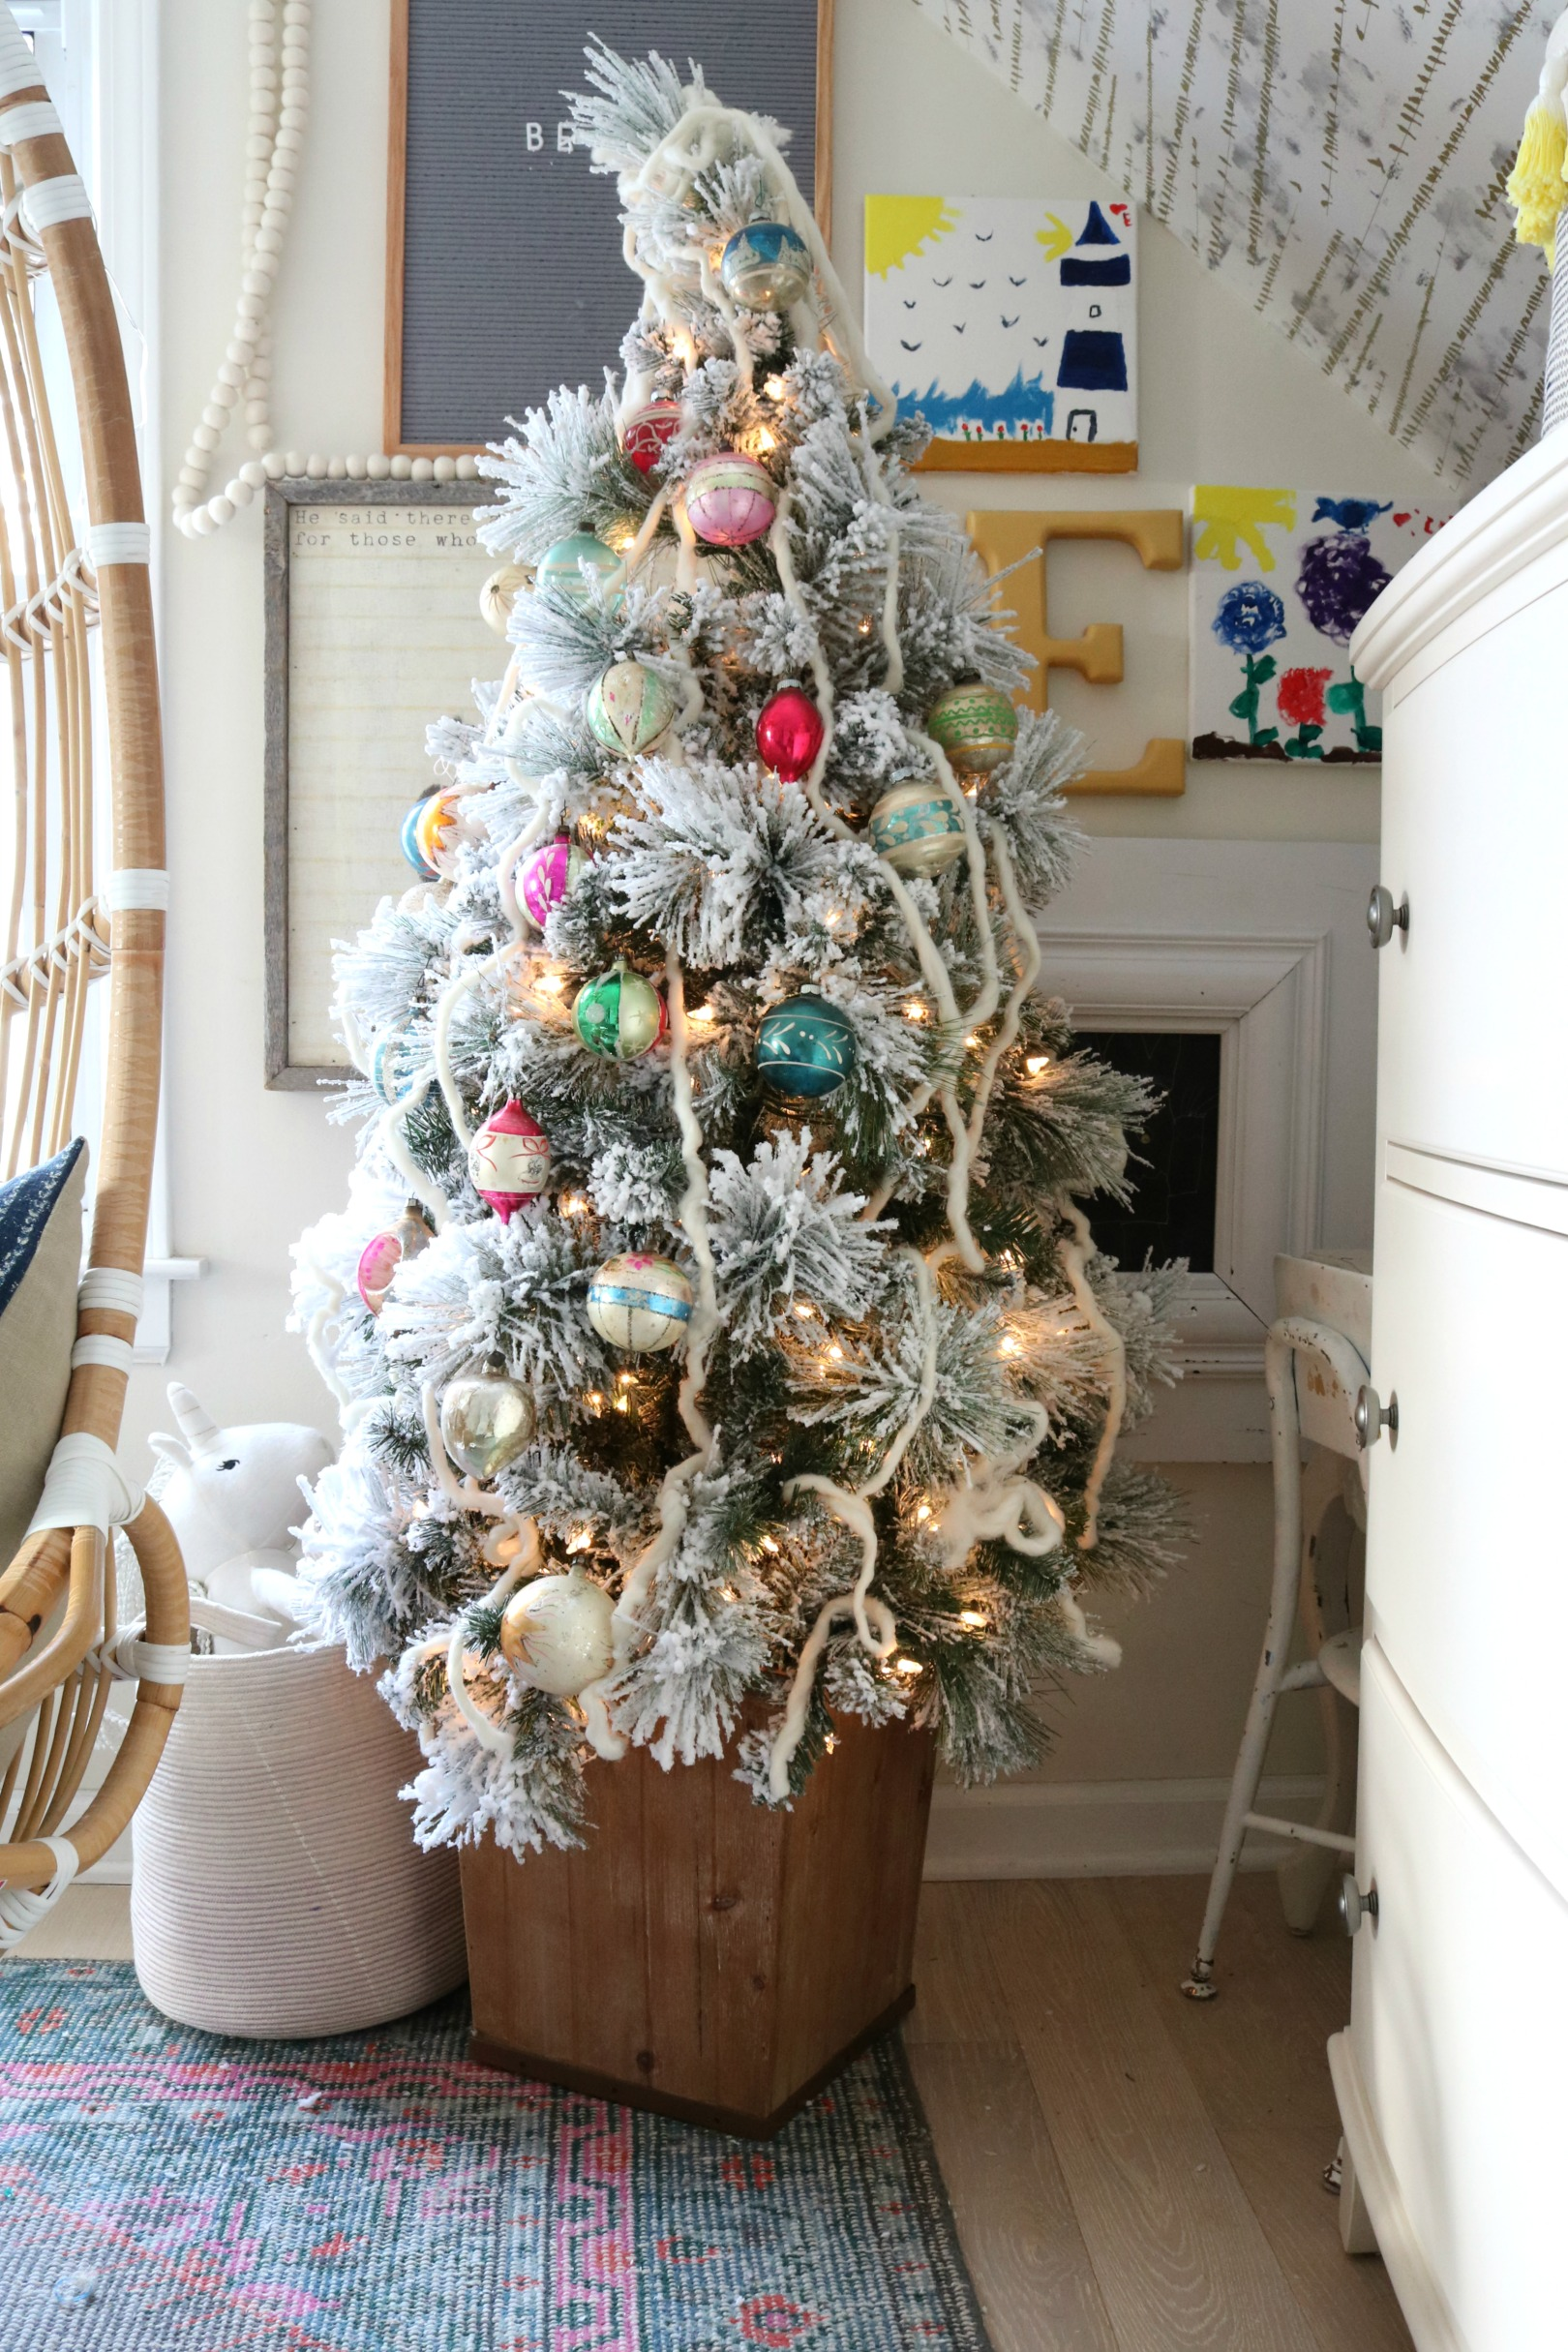 Christmas Decor in a Small Cape- Girls Shared Bedroom 099